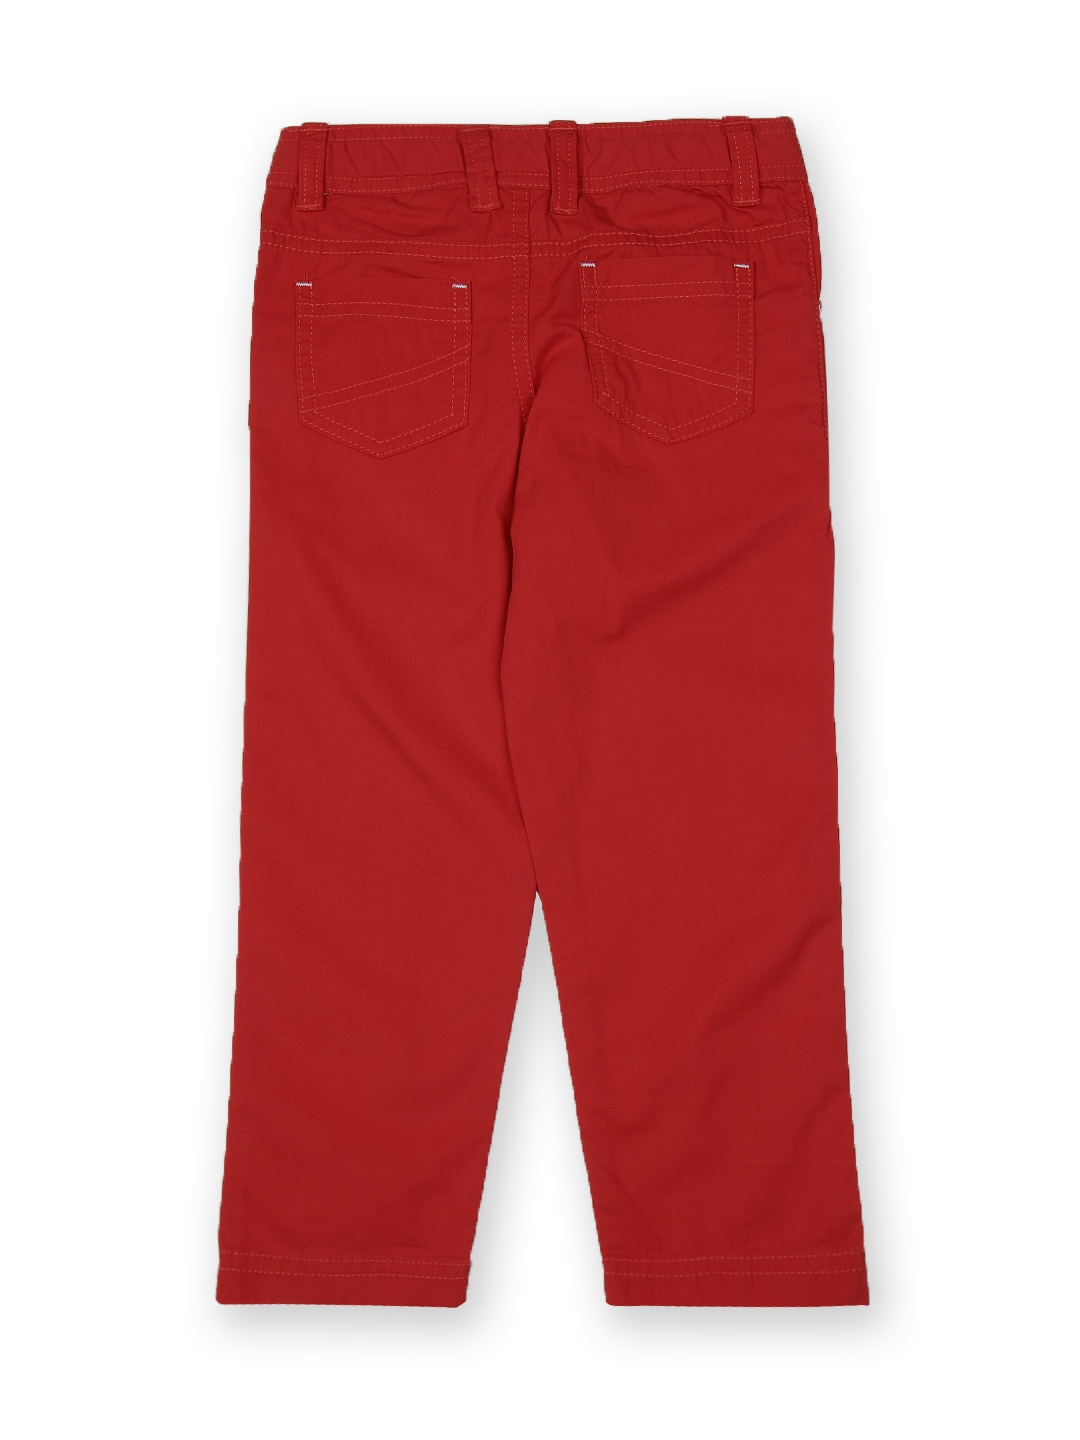 88426a617167 Buy Puma Boys Red Classic Trousers - Trousers for Boys 391741